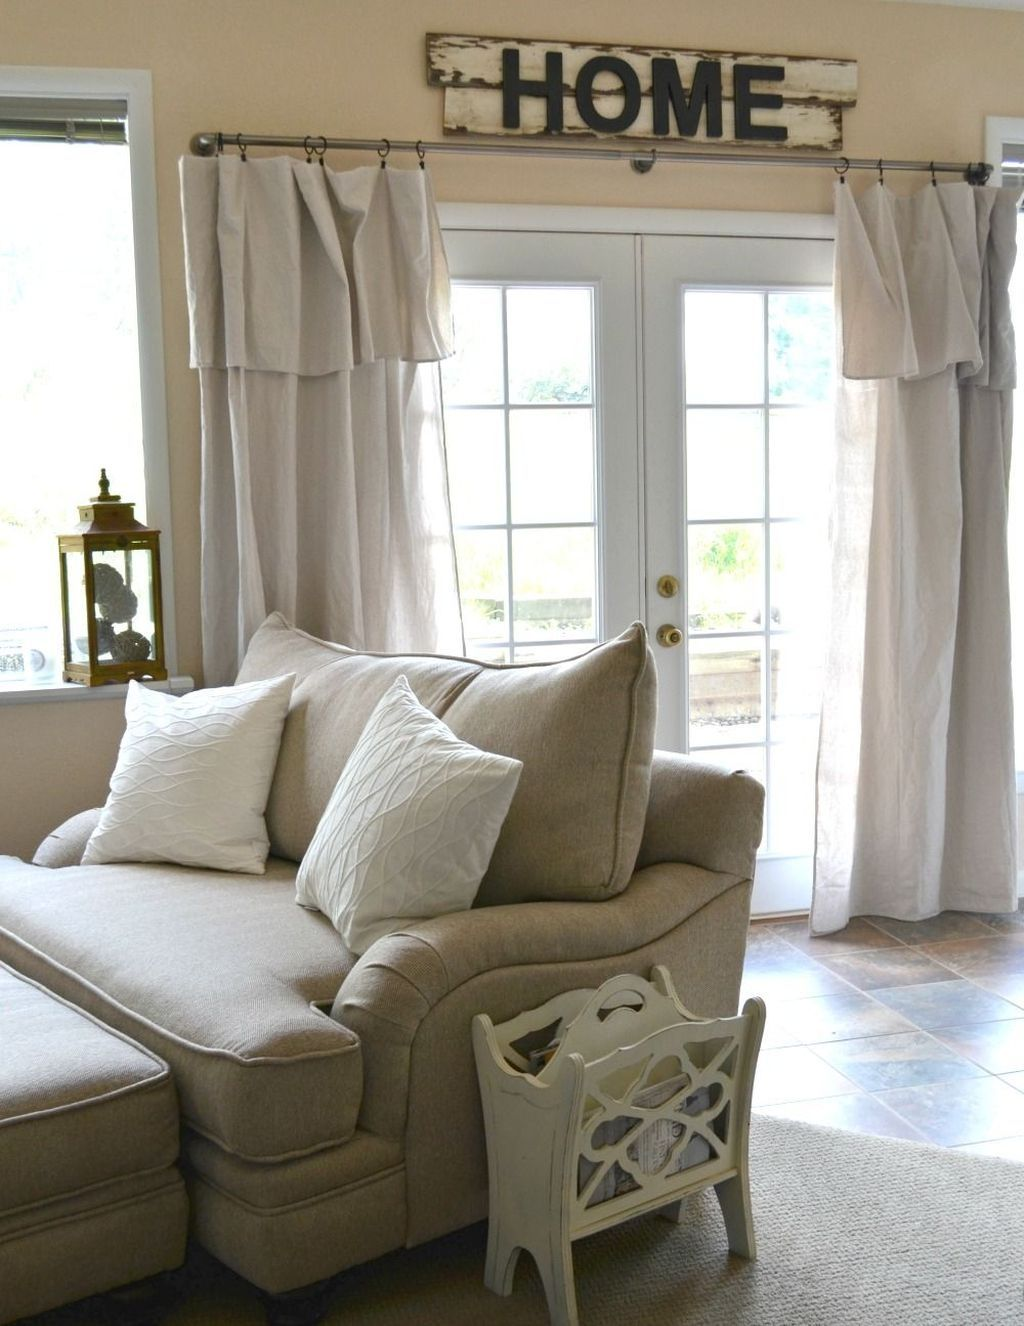 Nice 30 Lovely Farmhouse Living Room Curtains Ideas More At Https Trendecora Com 20 Curtains Living Room Farmhouse Style Living Room Farm House Living Room #vintage #curtains #for #living #room